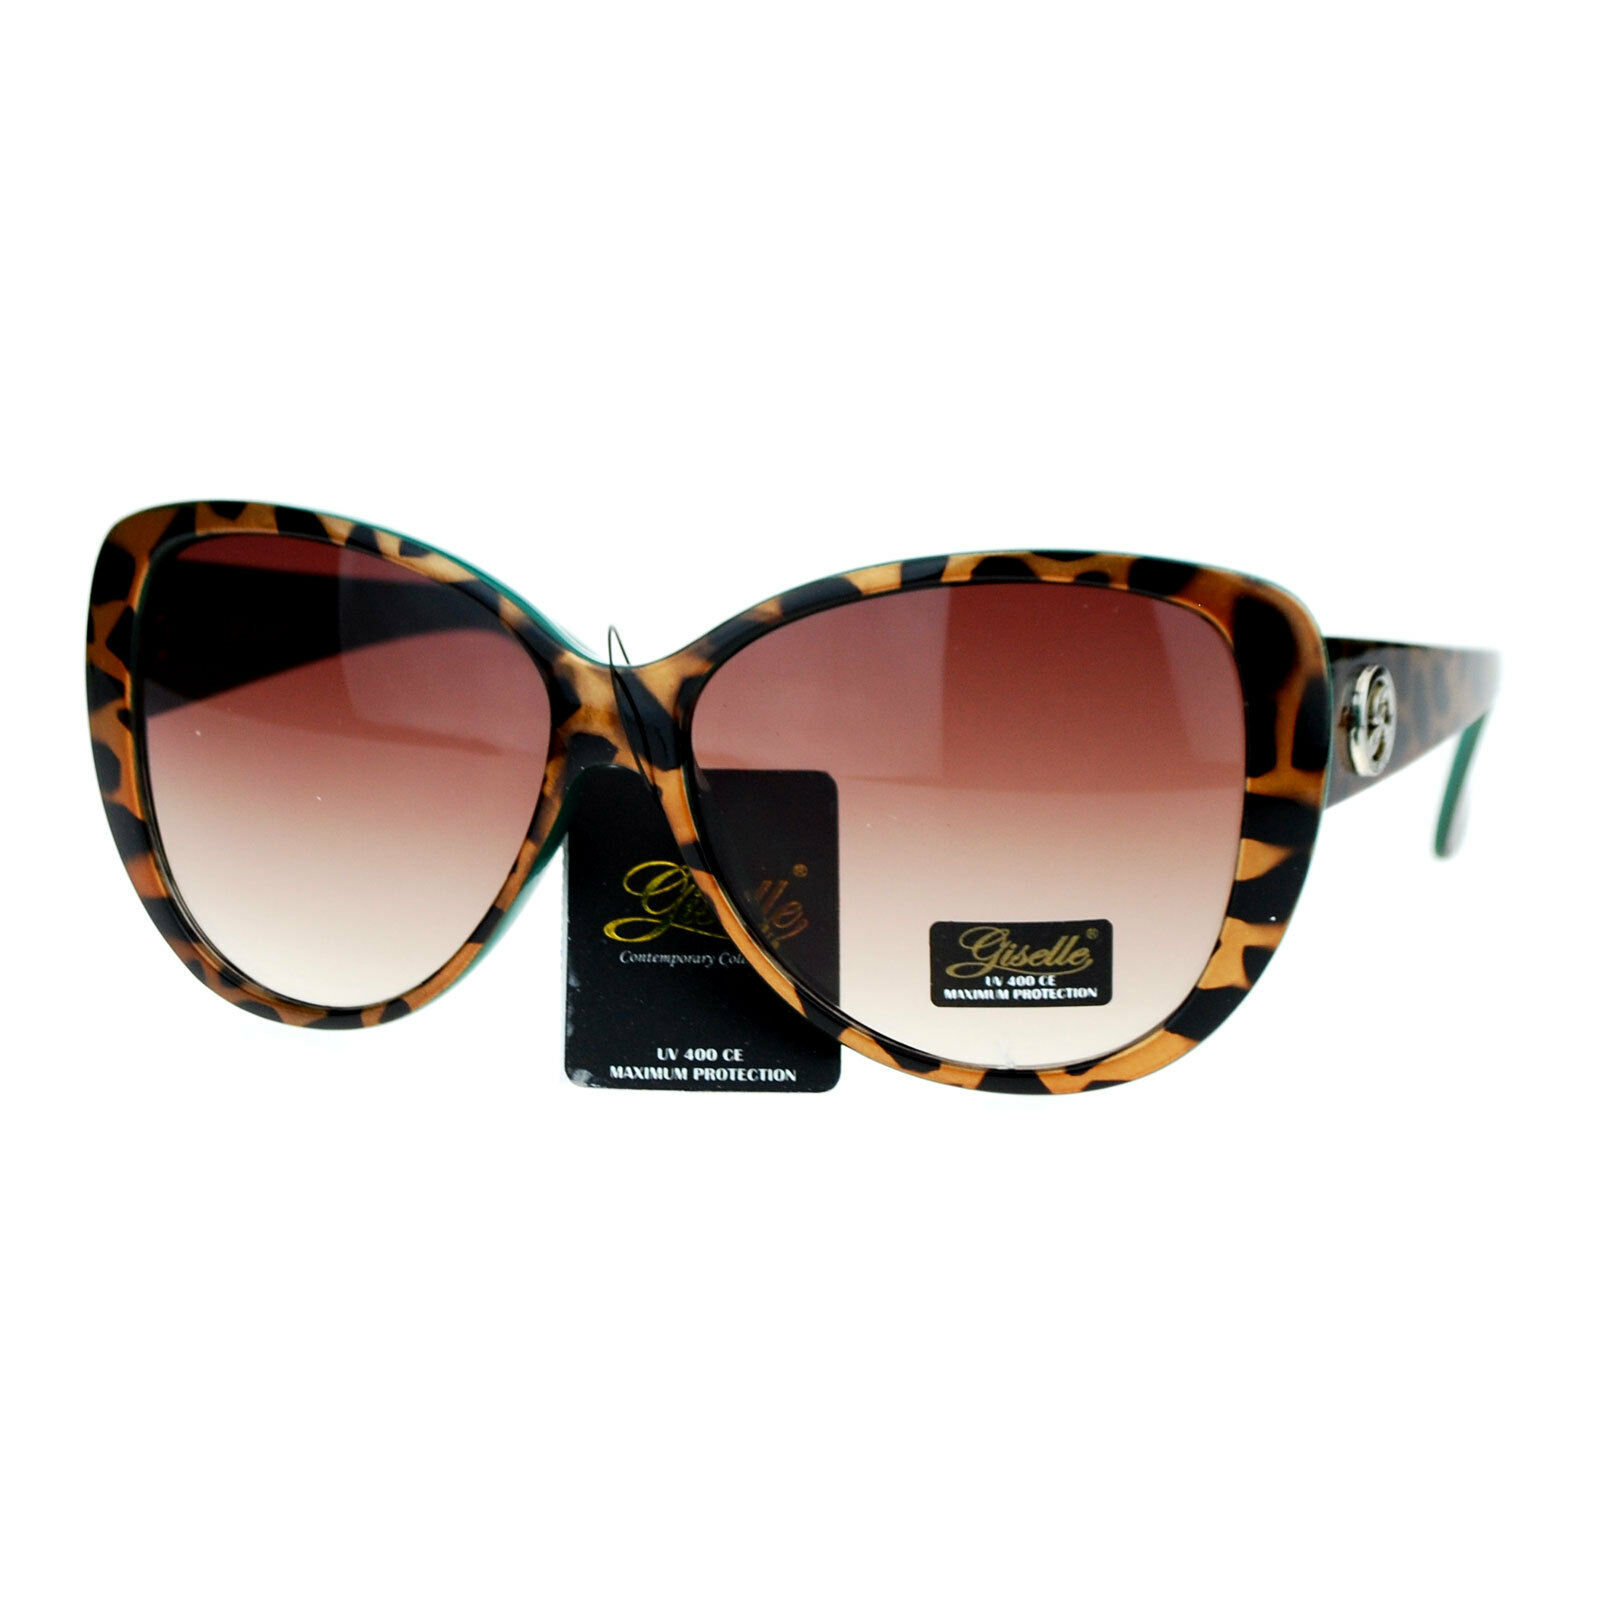 Giselle Lunettes Womens Sunglasses Oversized Cateye Butterfly Fashion Shades